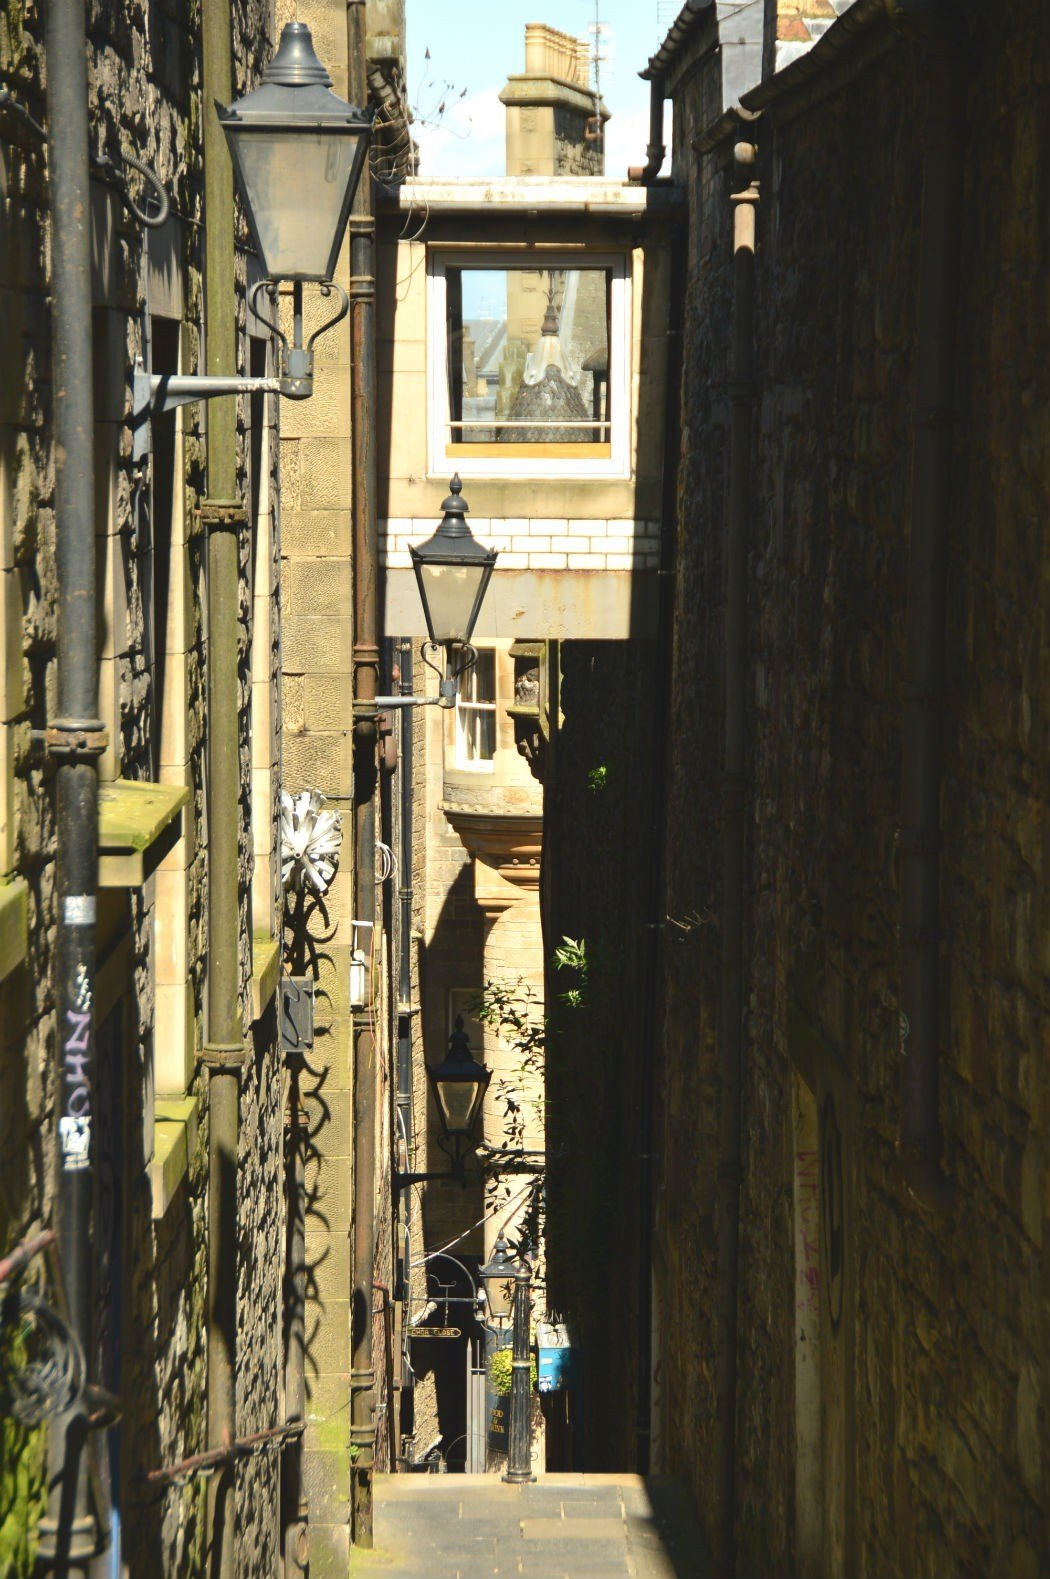 edinburgh lane way with street lamps